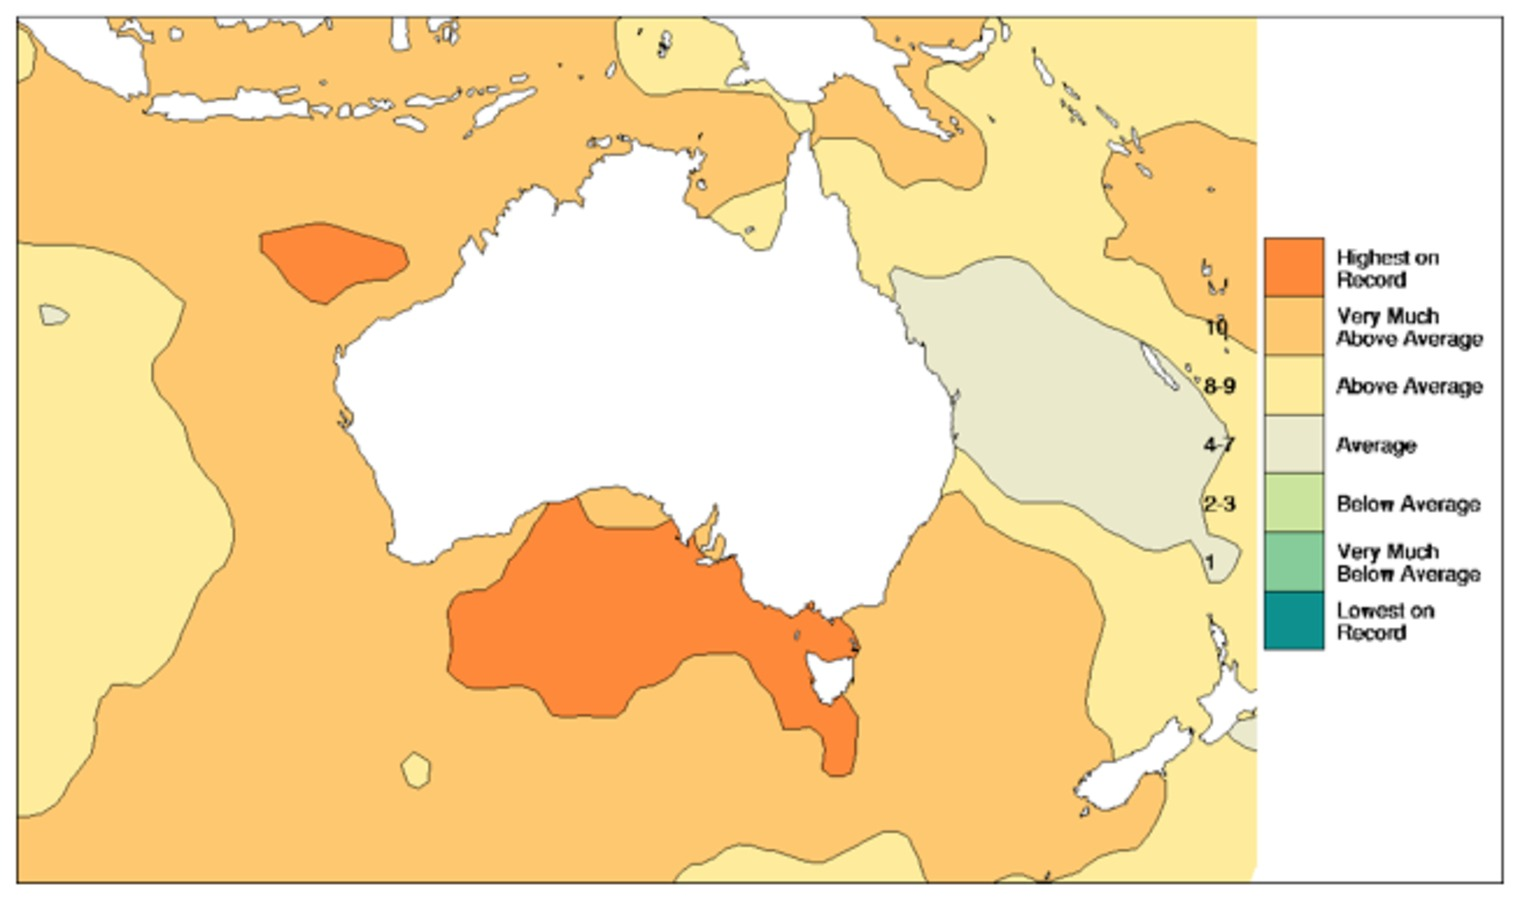 ... warm in most oceans around Australia in 2013. Bureau of Meteorology